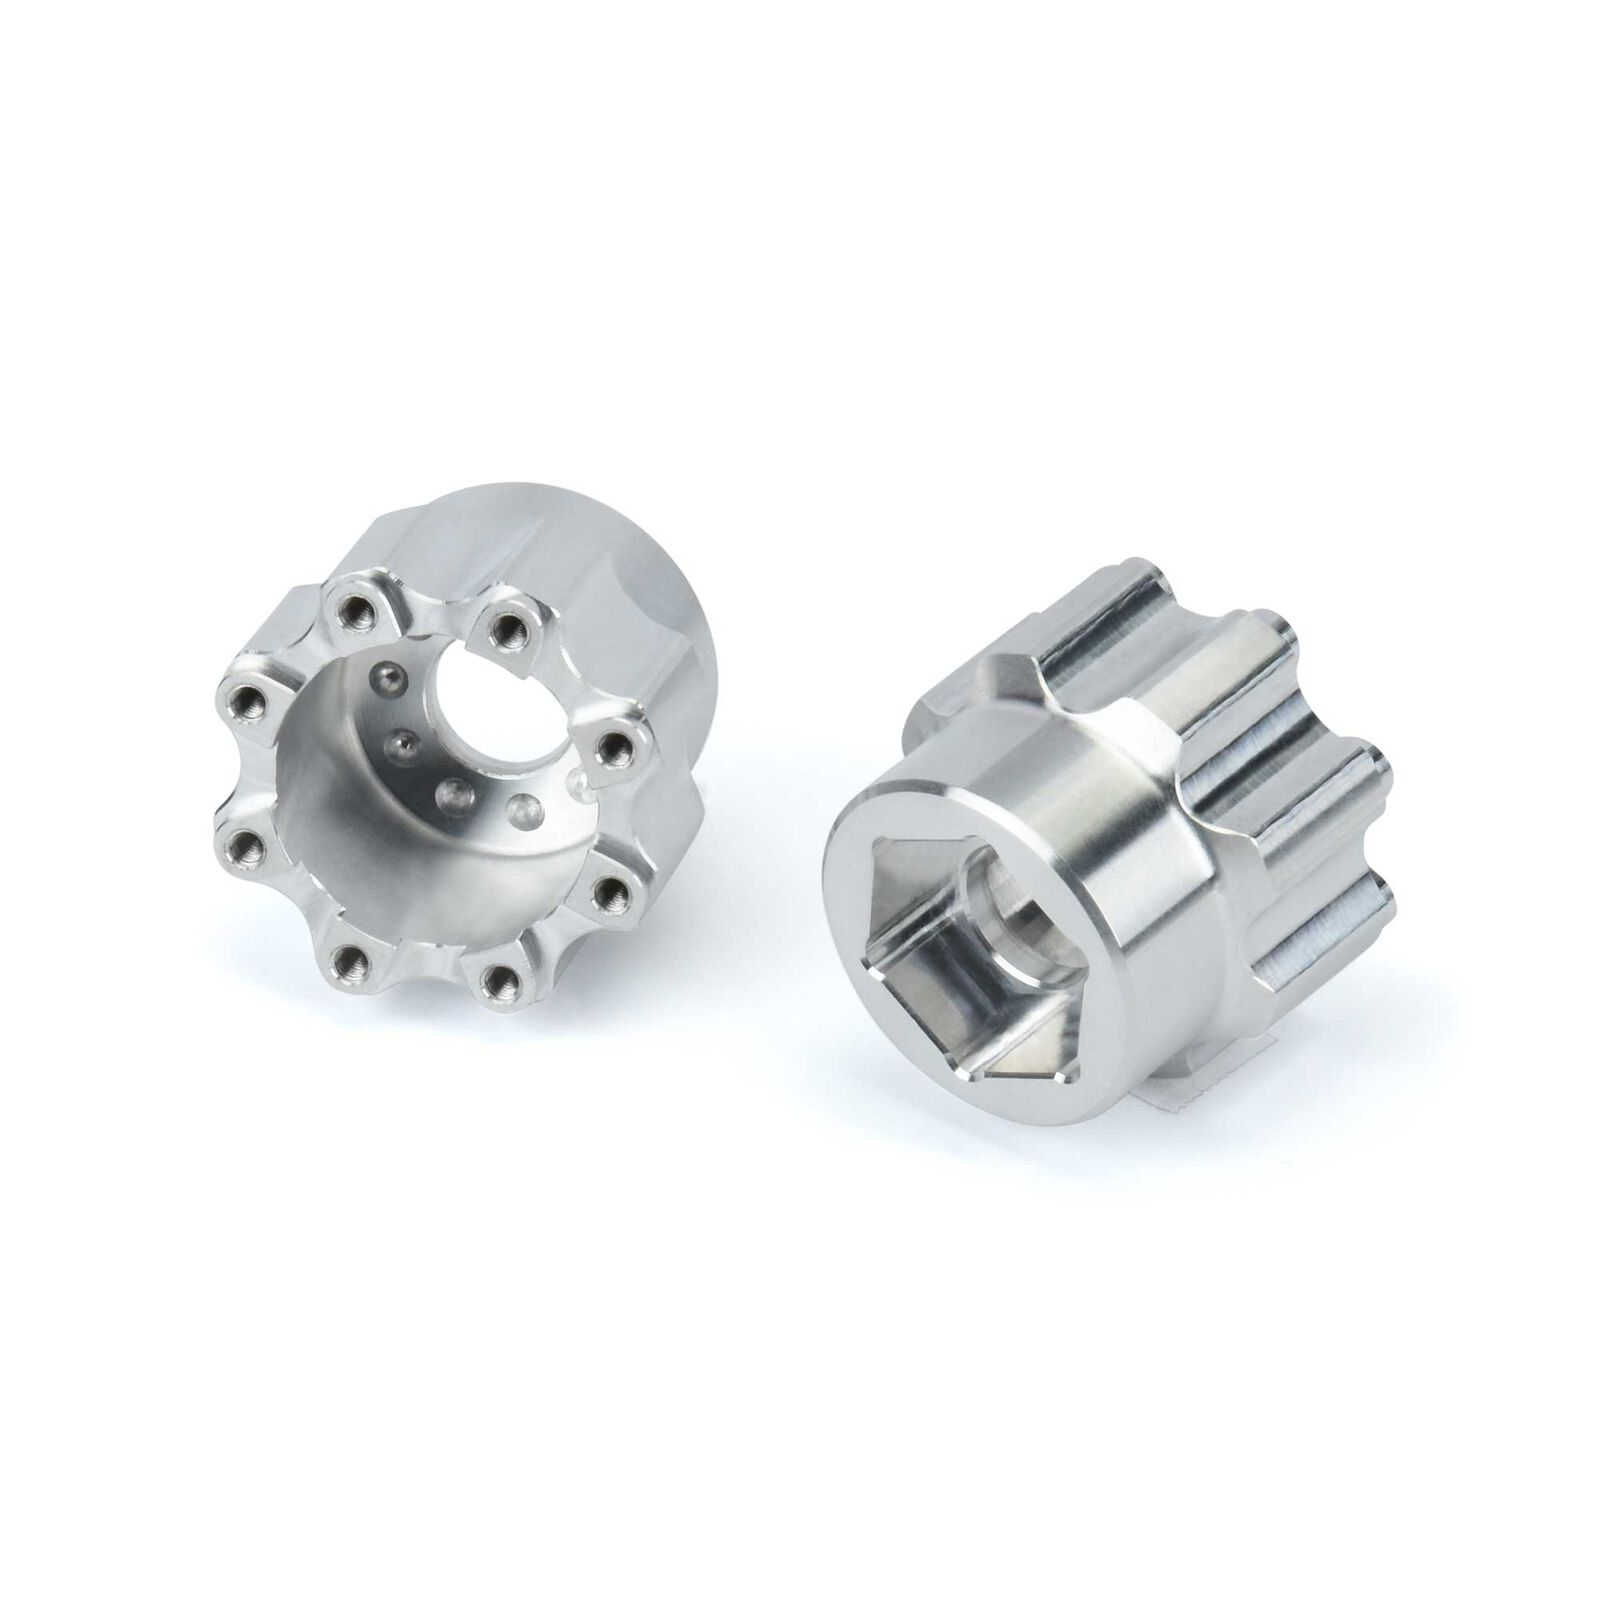 1/8 8x32 to 20mm Aluminum Hex Adapters